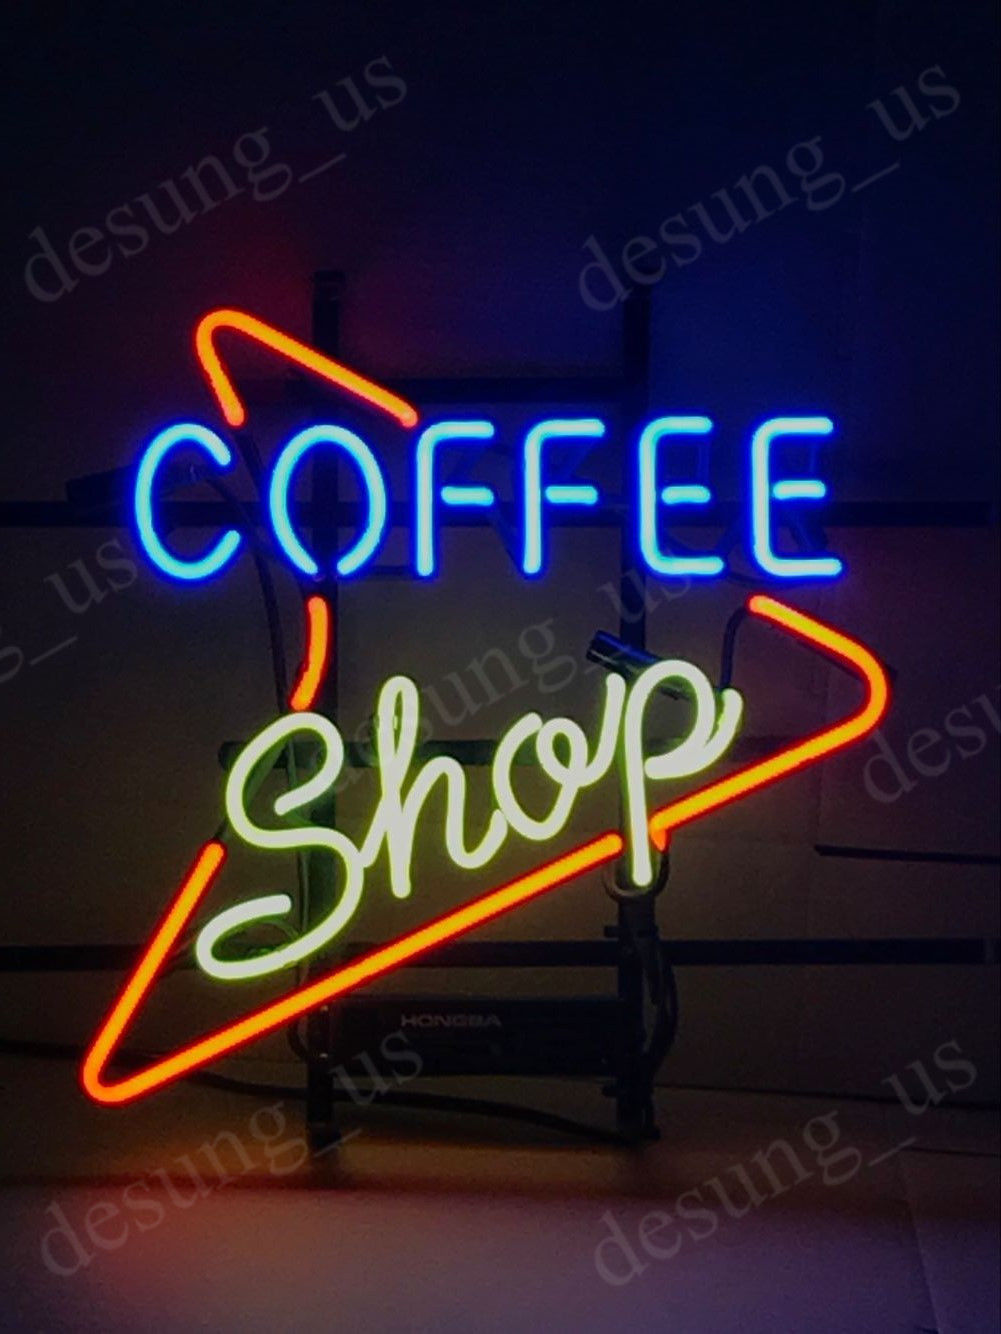 "New Coffee Shop Cafe Espresso Neon Sign 20""x16"" Ship From USA"